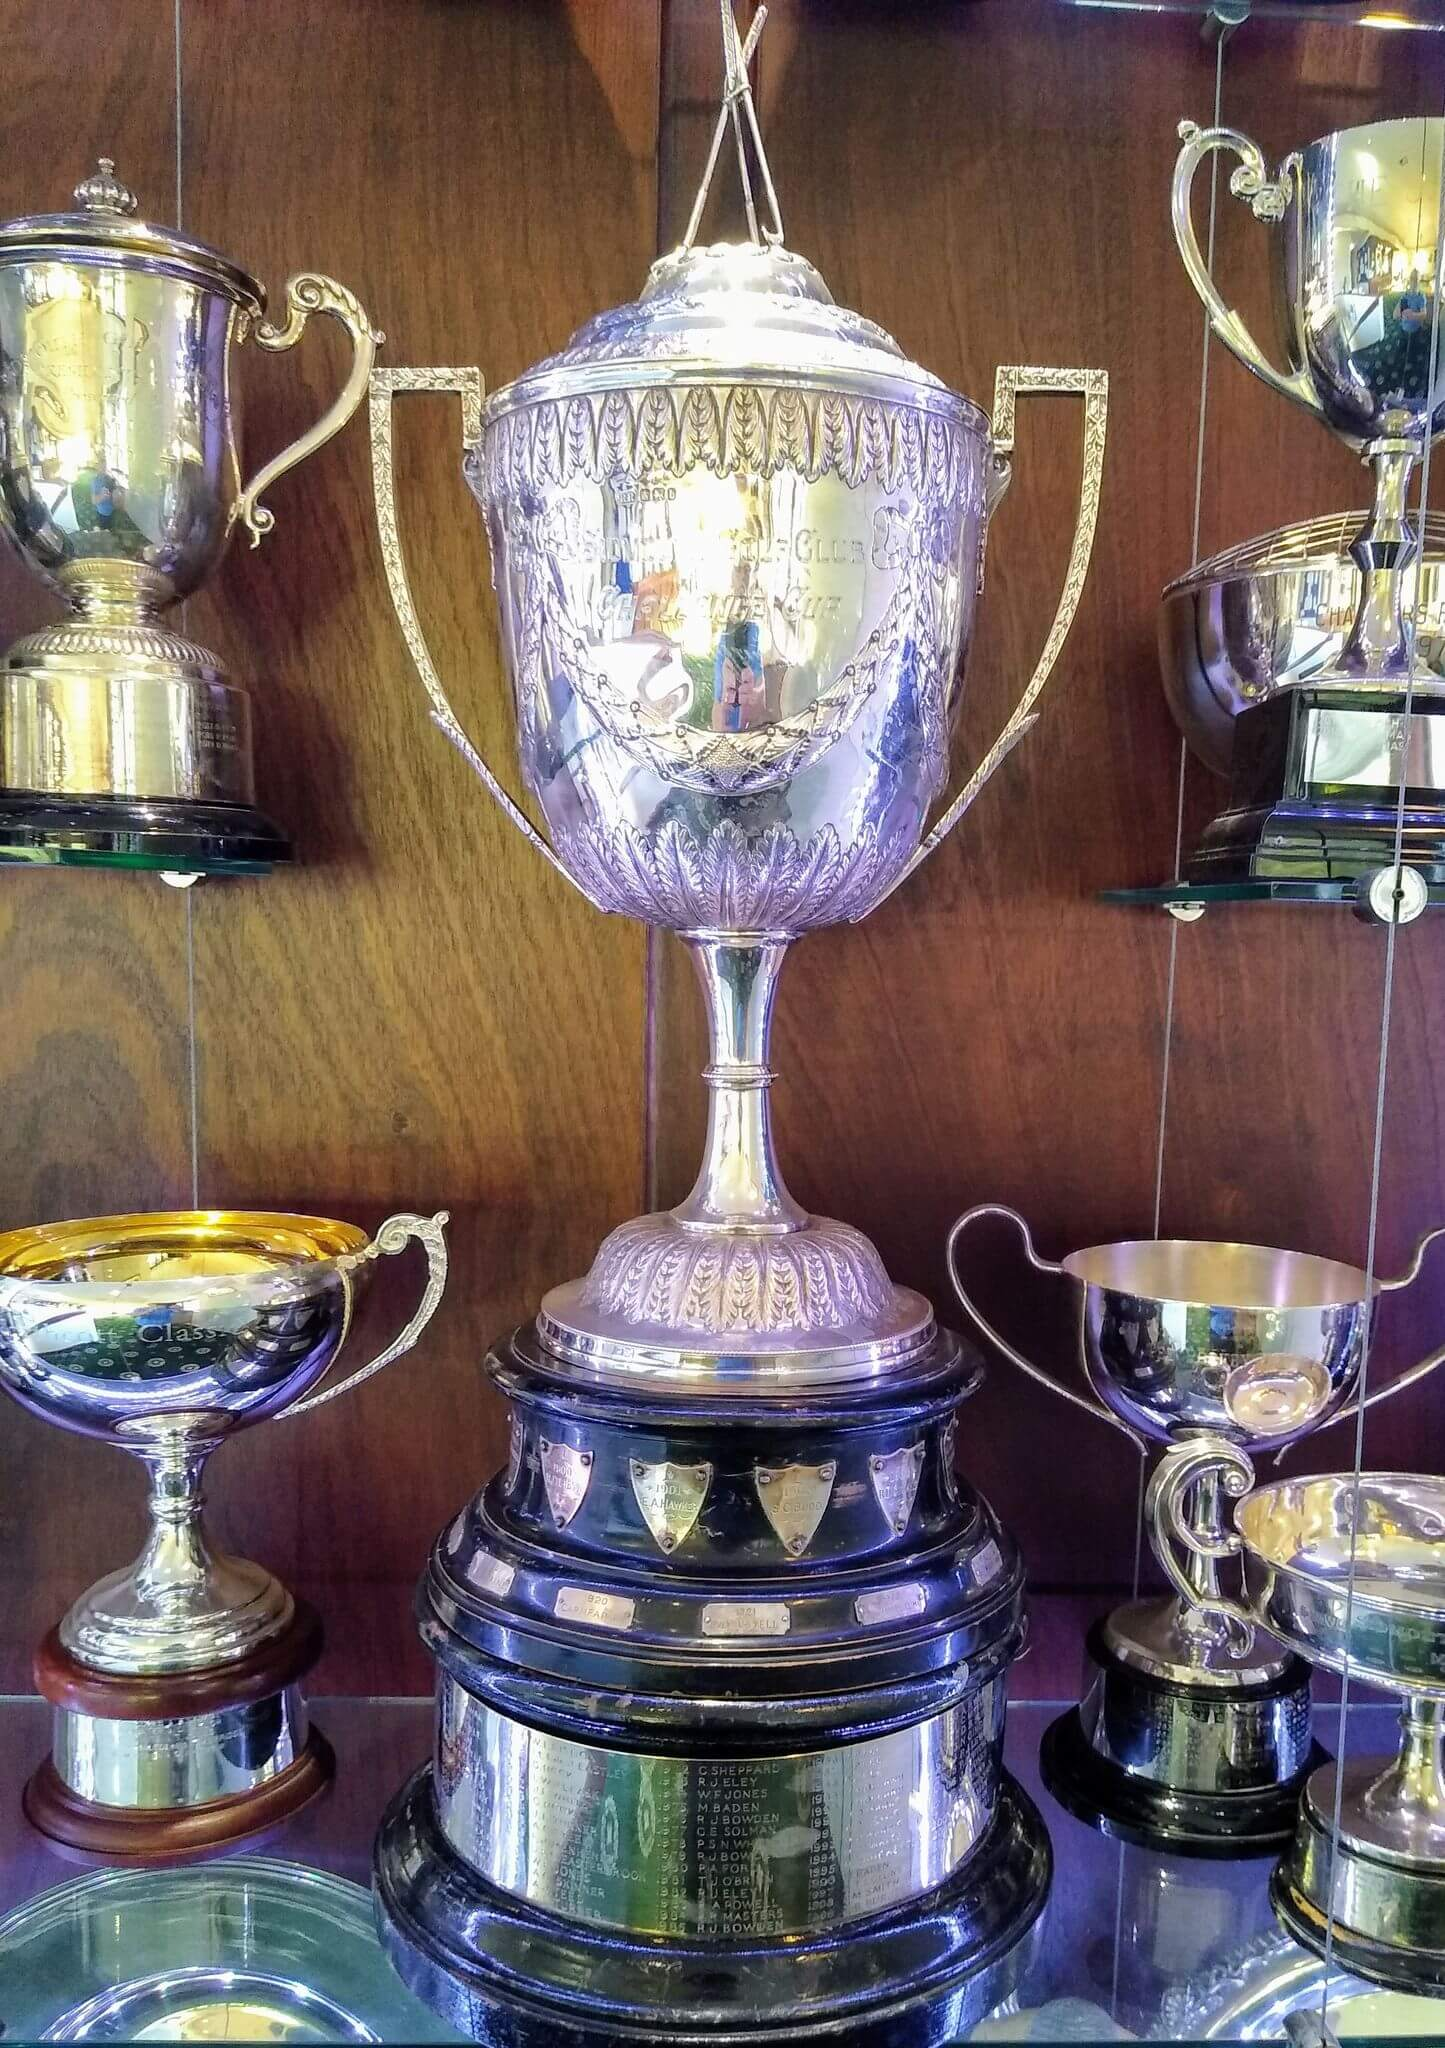 The Sidmouth Golf Club Challenge Cup, won for the second year running by James Spiller